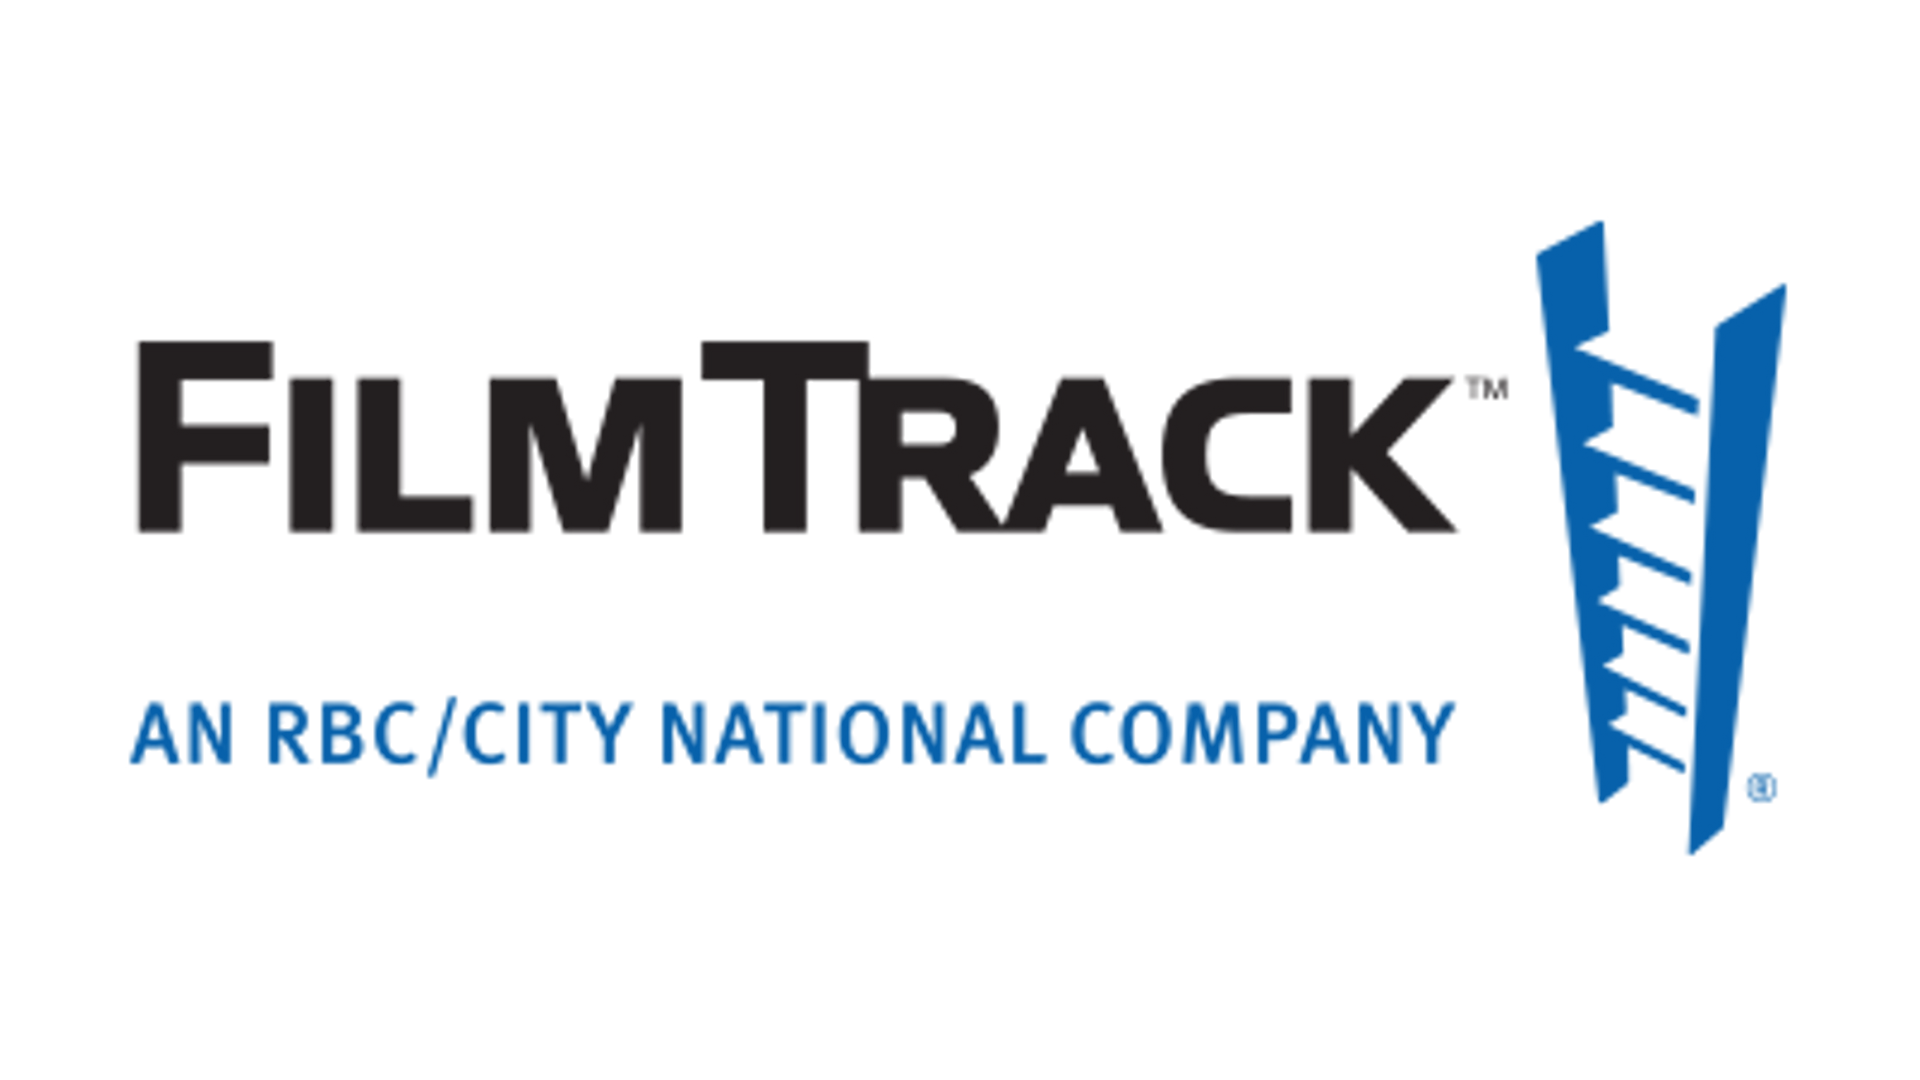 FilmTrack Graphic Promo